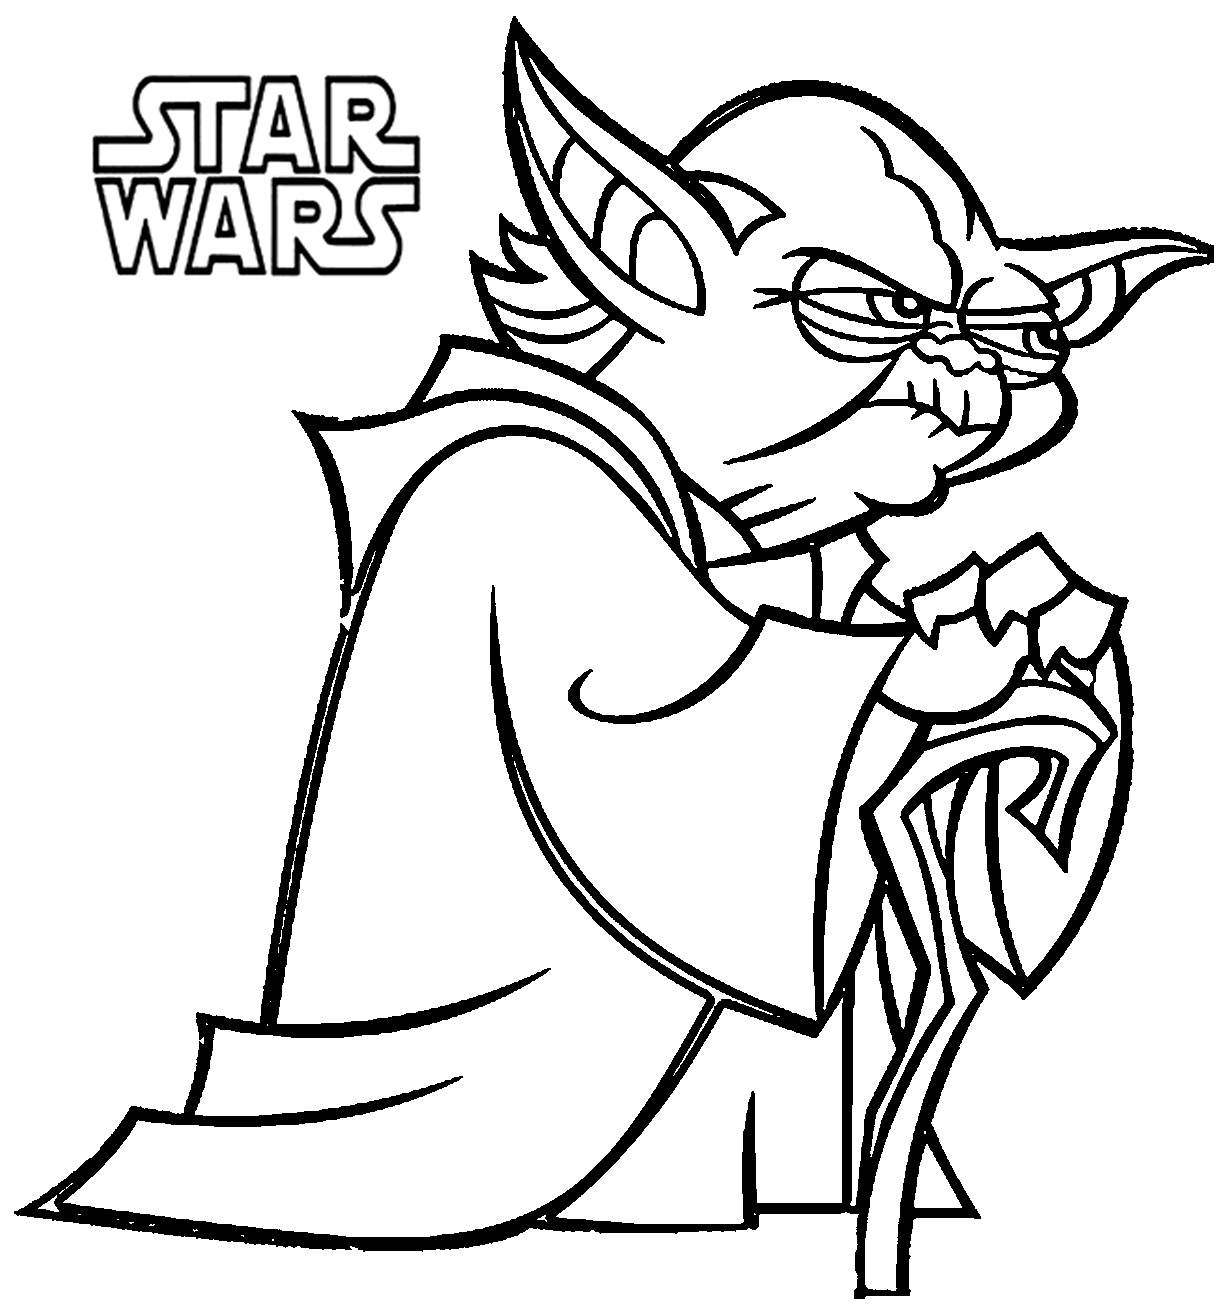 50 Top Star Wars Coloring Pages Online Free